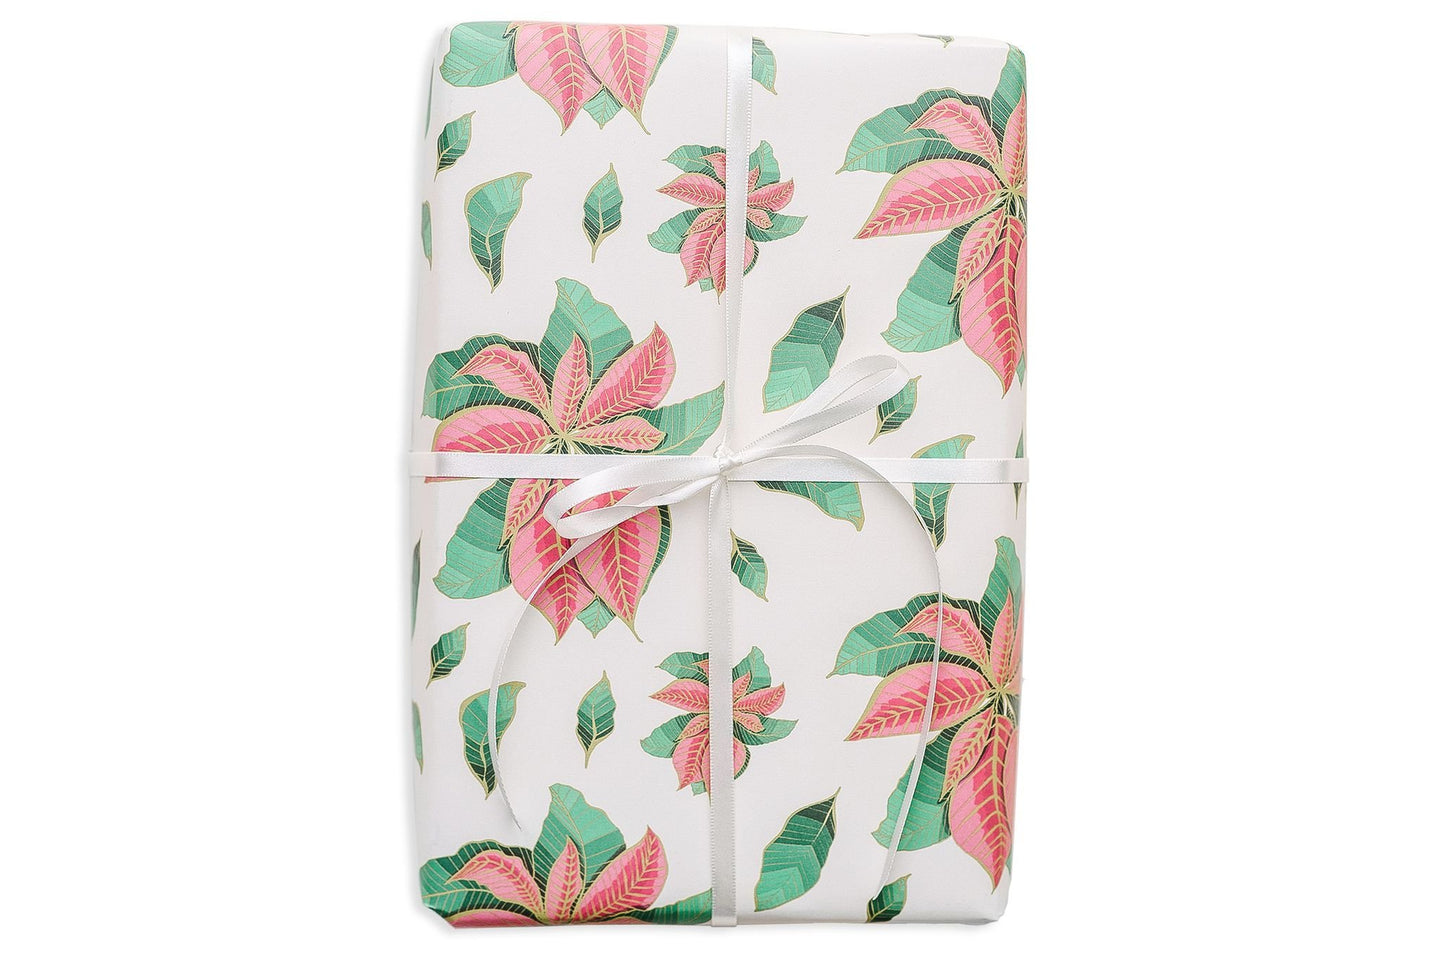 Good Juju Ink Nouveau Poinsettia Gift Wrap Roll / Neighborhood Goods